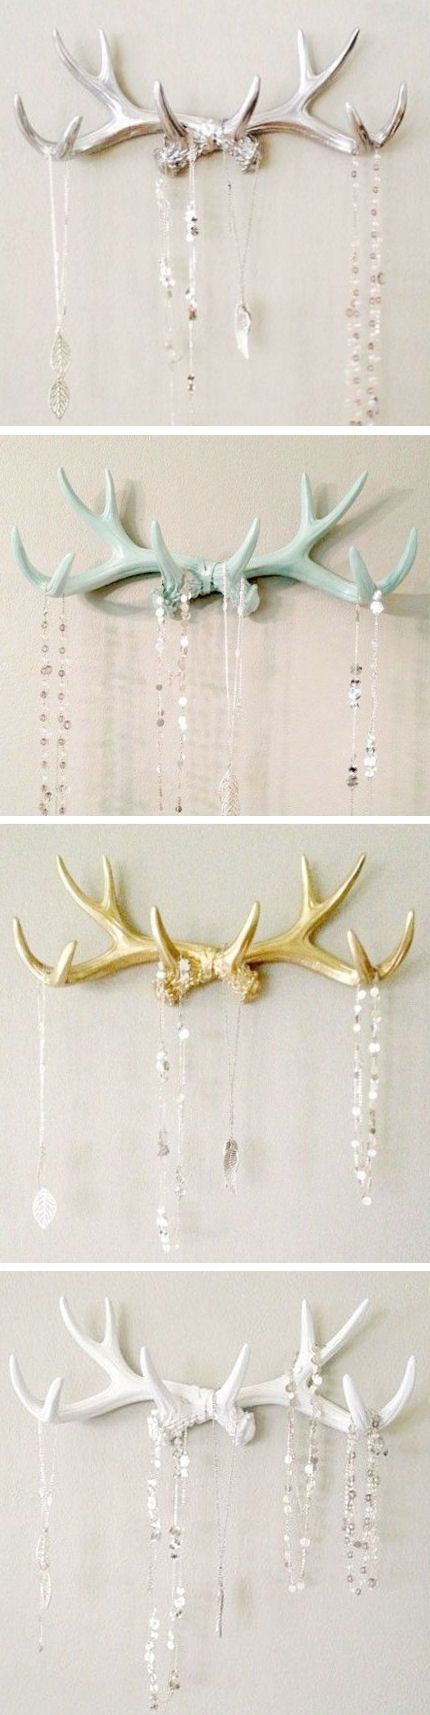 Antlers For Your Necklaces